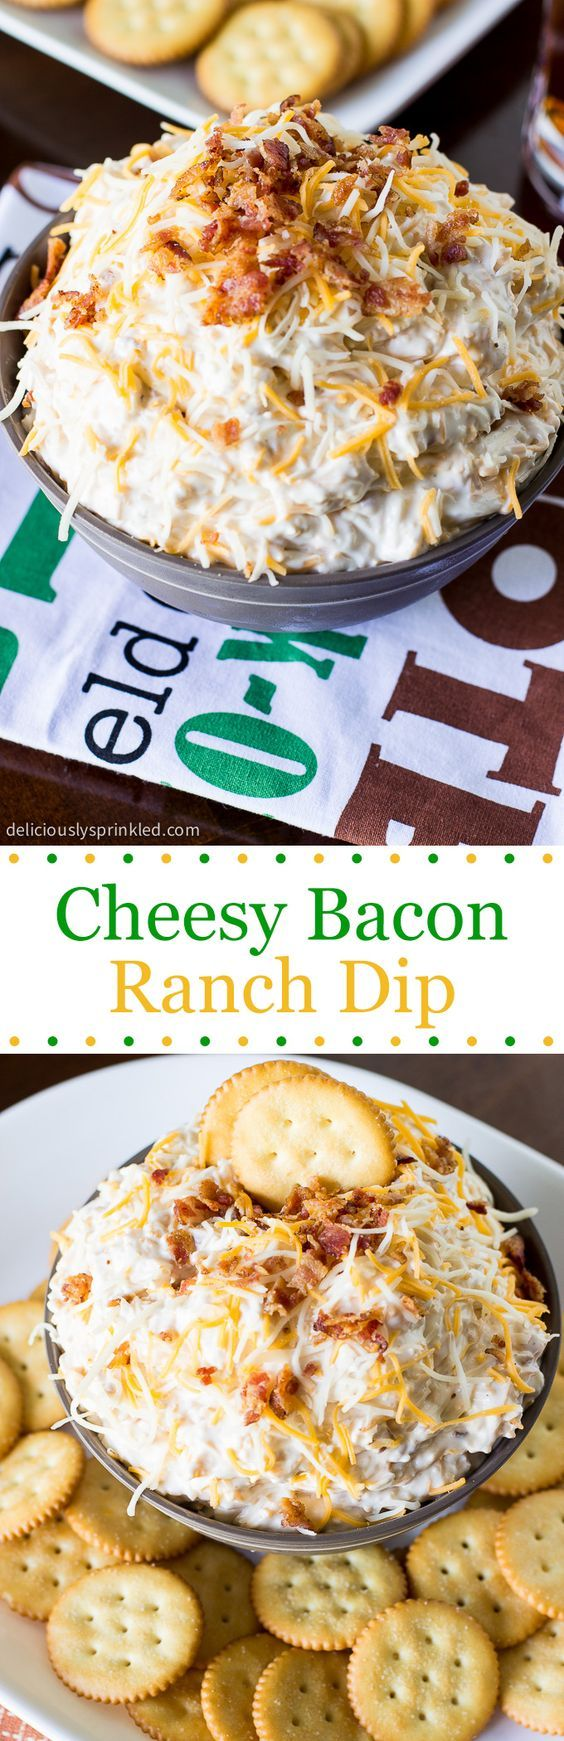 Deliciously Sprinkled Cheesy Bacon Ranch Dip